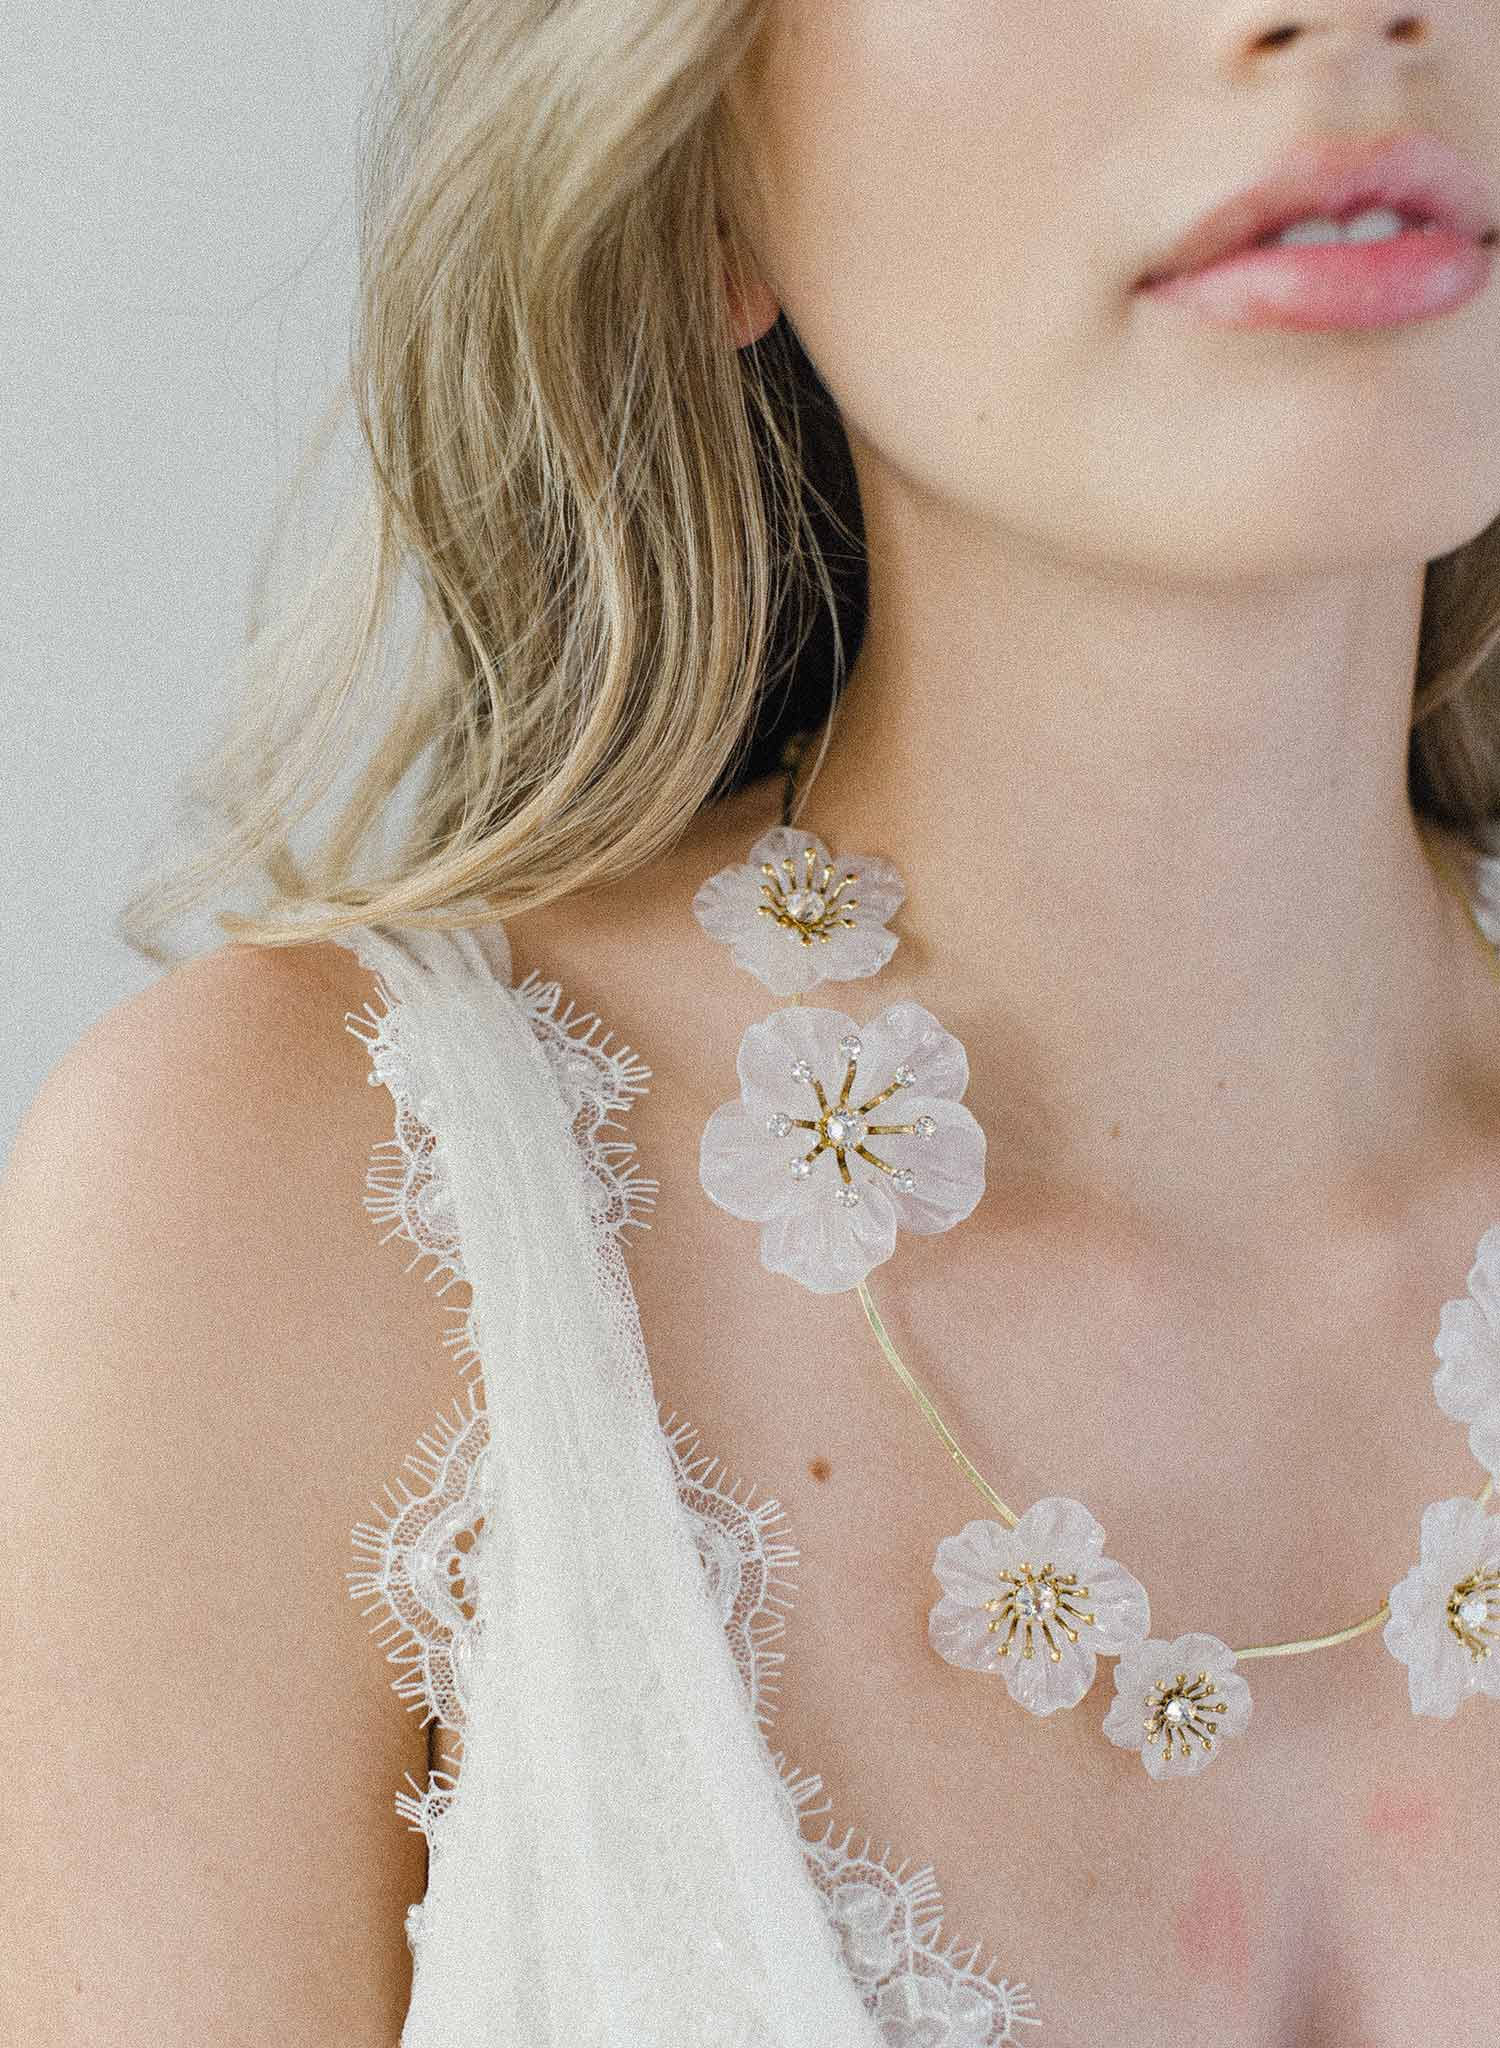 Milk glass florals necklace - Style #2014